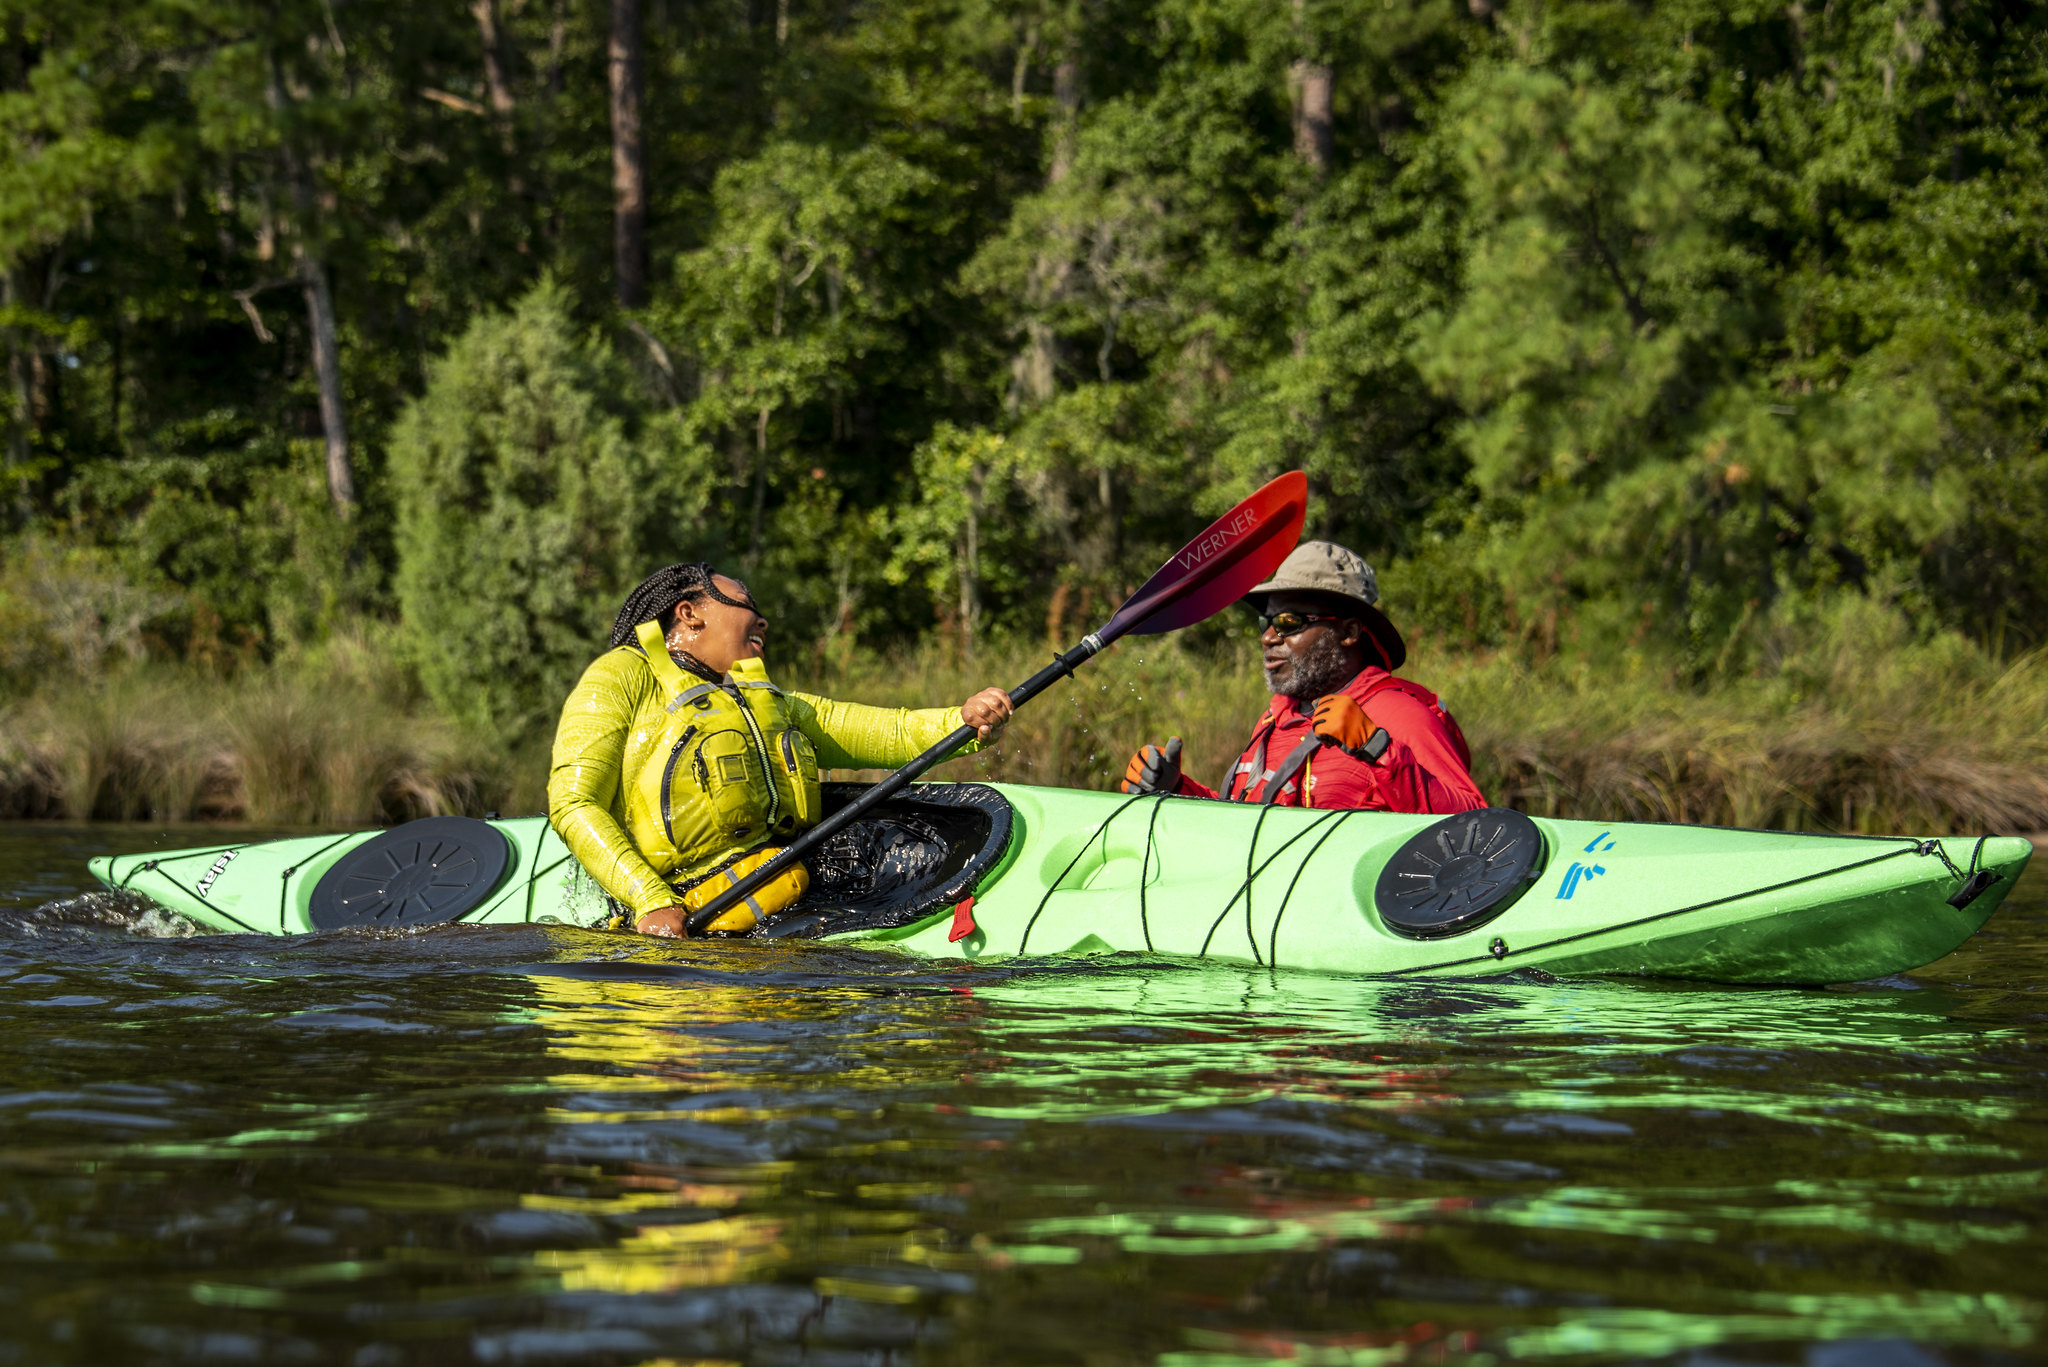 A young Black female participant dressed in yellow practicing a roll in a green kayak with a guide next to her in the water